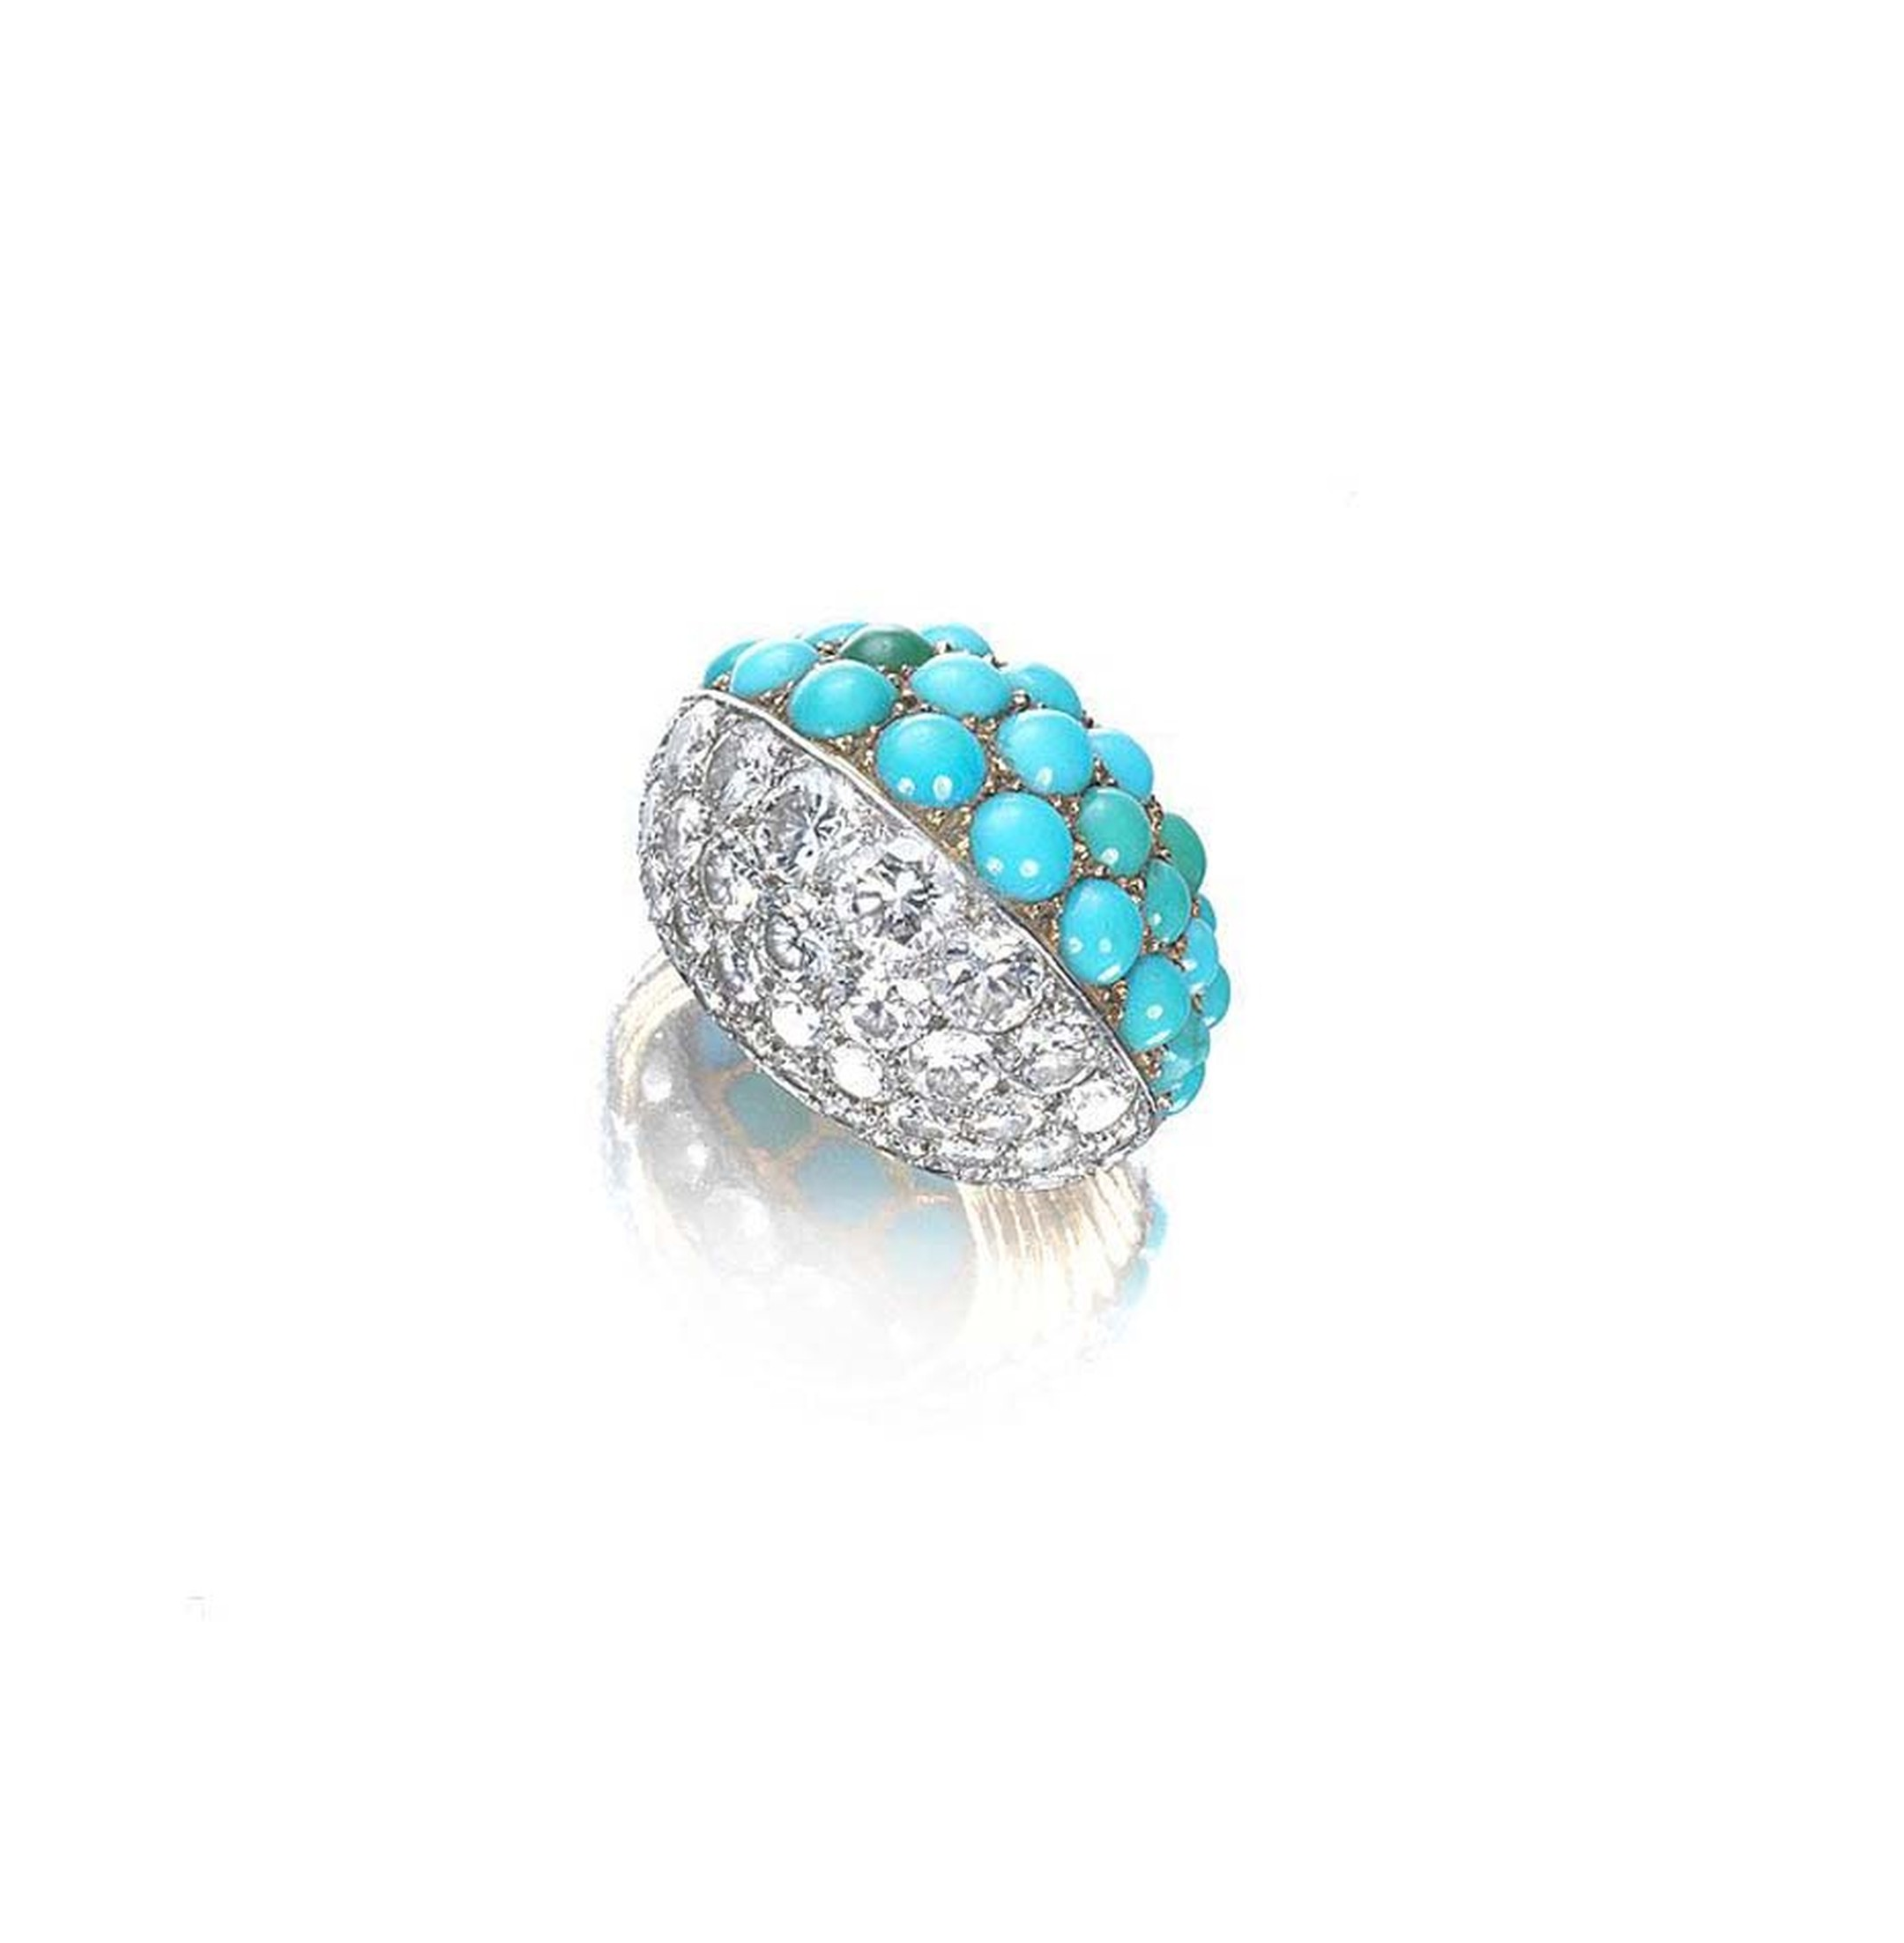 A turquoise and diamond Cartier cocktail ring circa 1960.The bombé design features pavé-set diamonds on one side and cabochon turquoise beads and brilliant-cut diamonds on the other.  The ring sold for £17,500, nearly quadruple its pre-sale estimates.